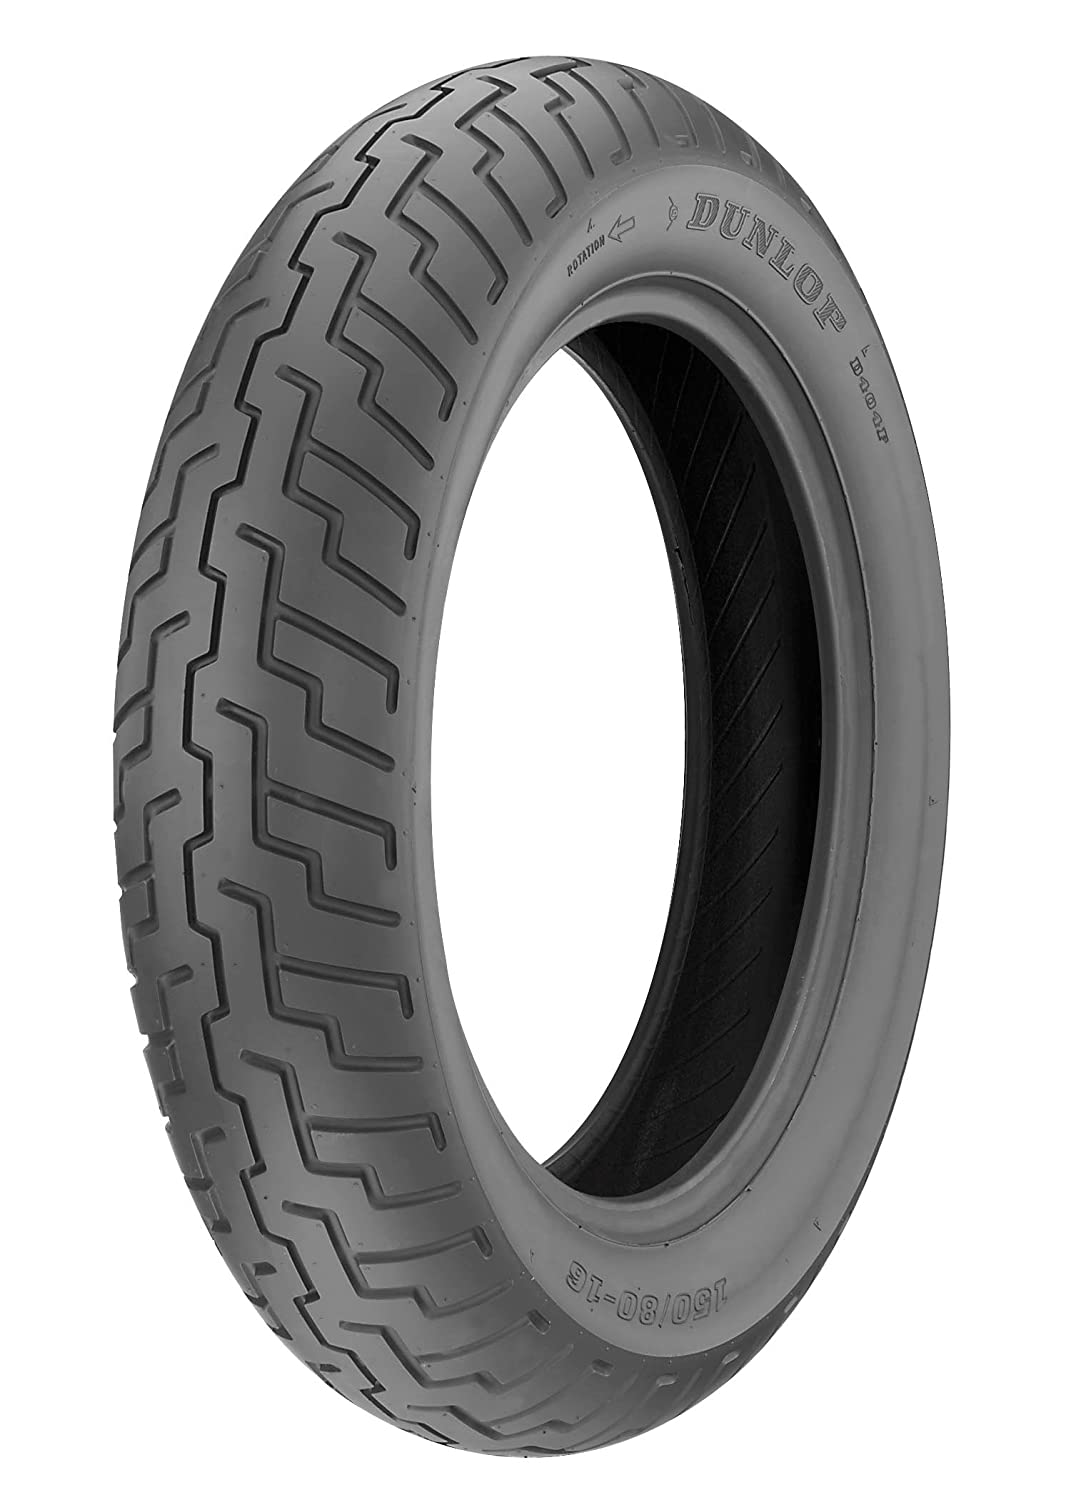 Dunlop D402 For Harley-Davidson Blackwall Front Tire - MH90H-21/Blackwall Dunlop Motorcycle 4333415946 31-4960-MPR2